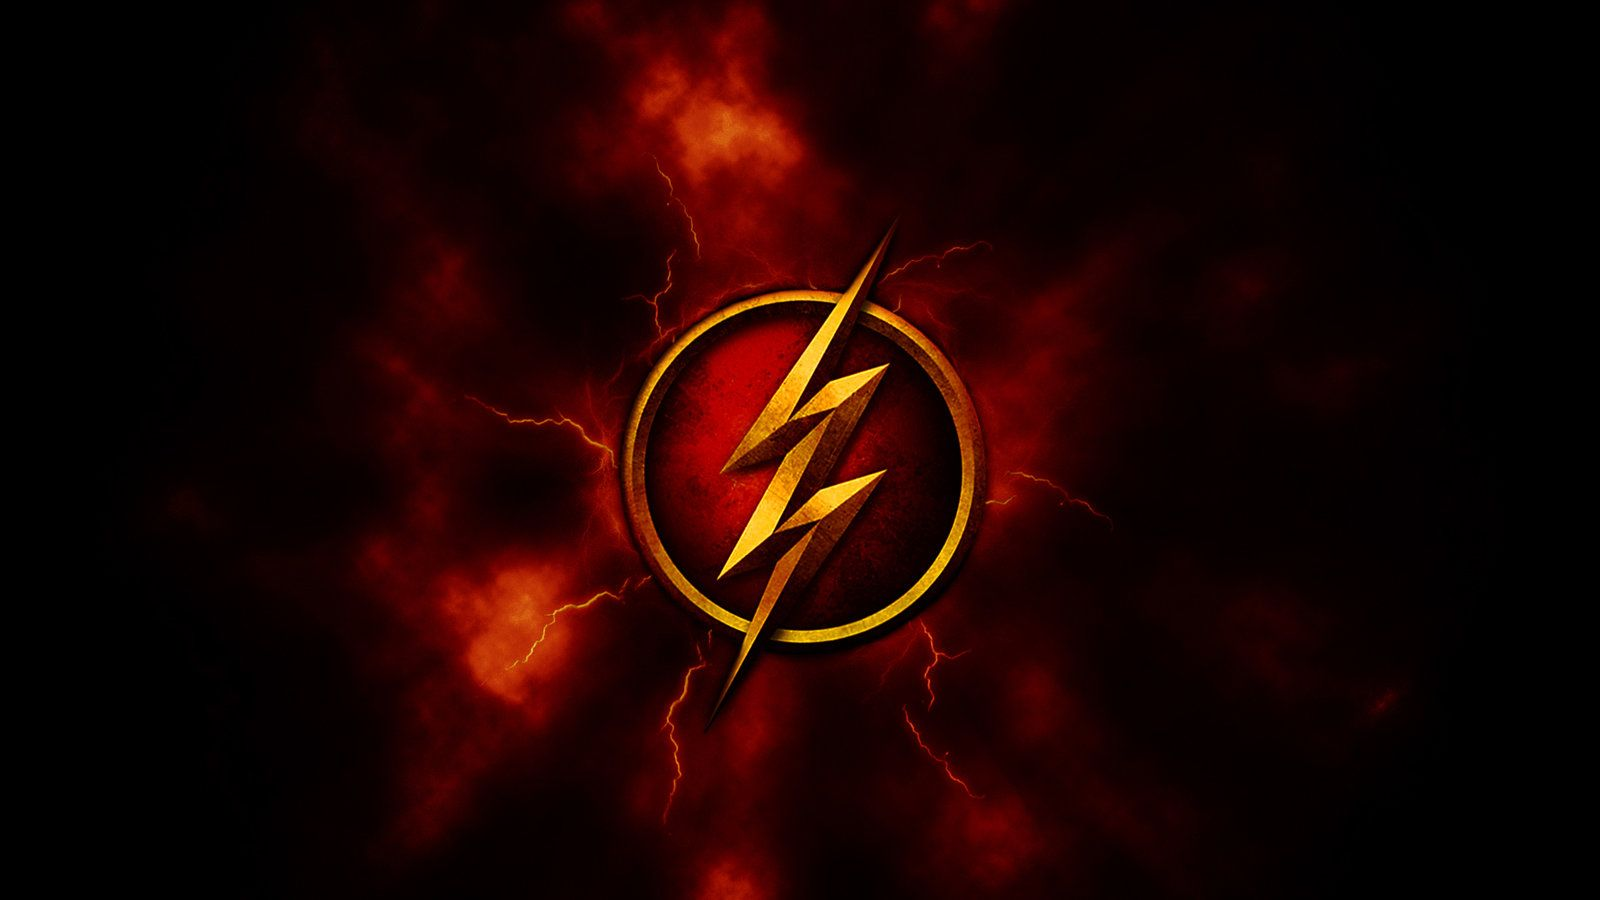 Flash Wallpaper Hd Resolution Is Cool Wallpapers Wallpapers Em